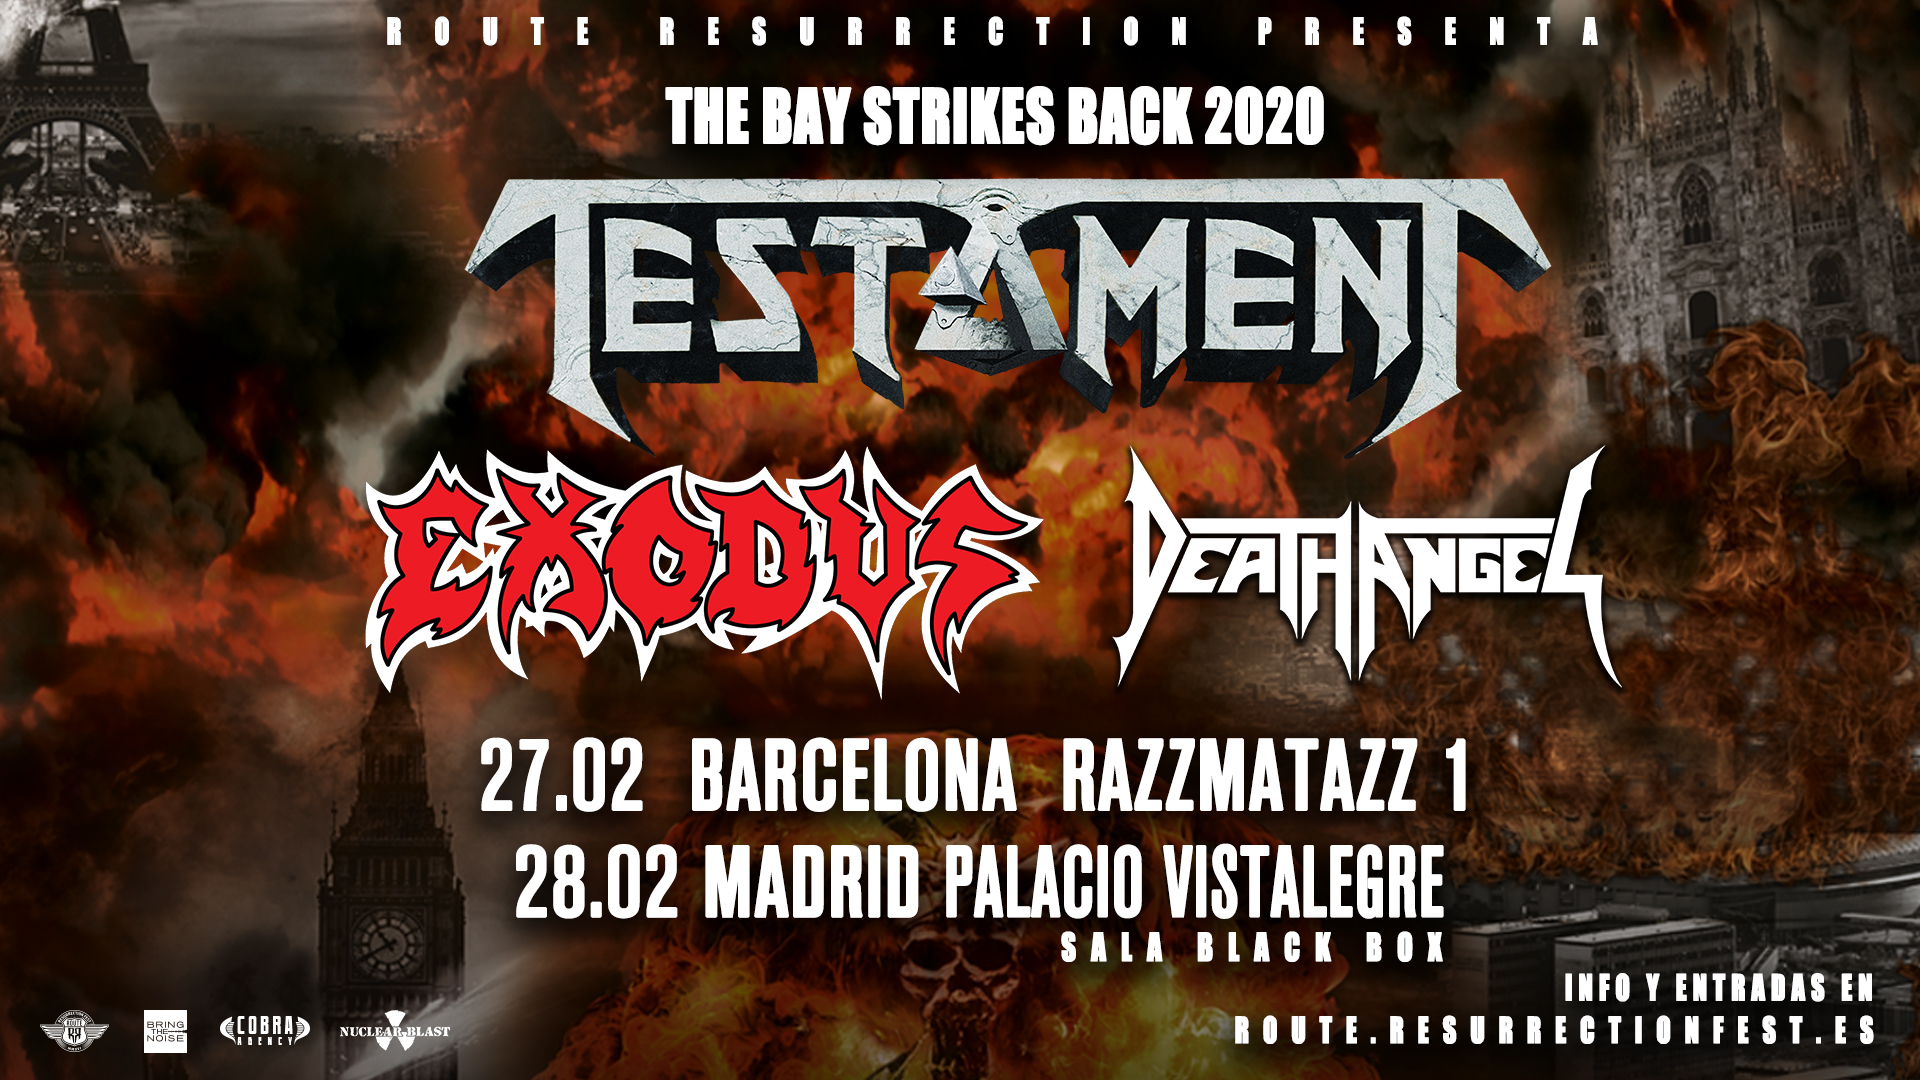 Route Resurrection Fest 2020 - Testament - Event